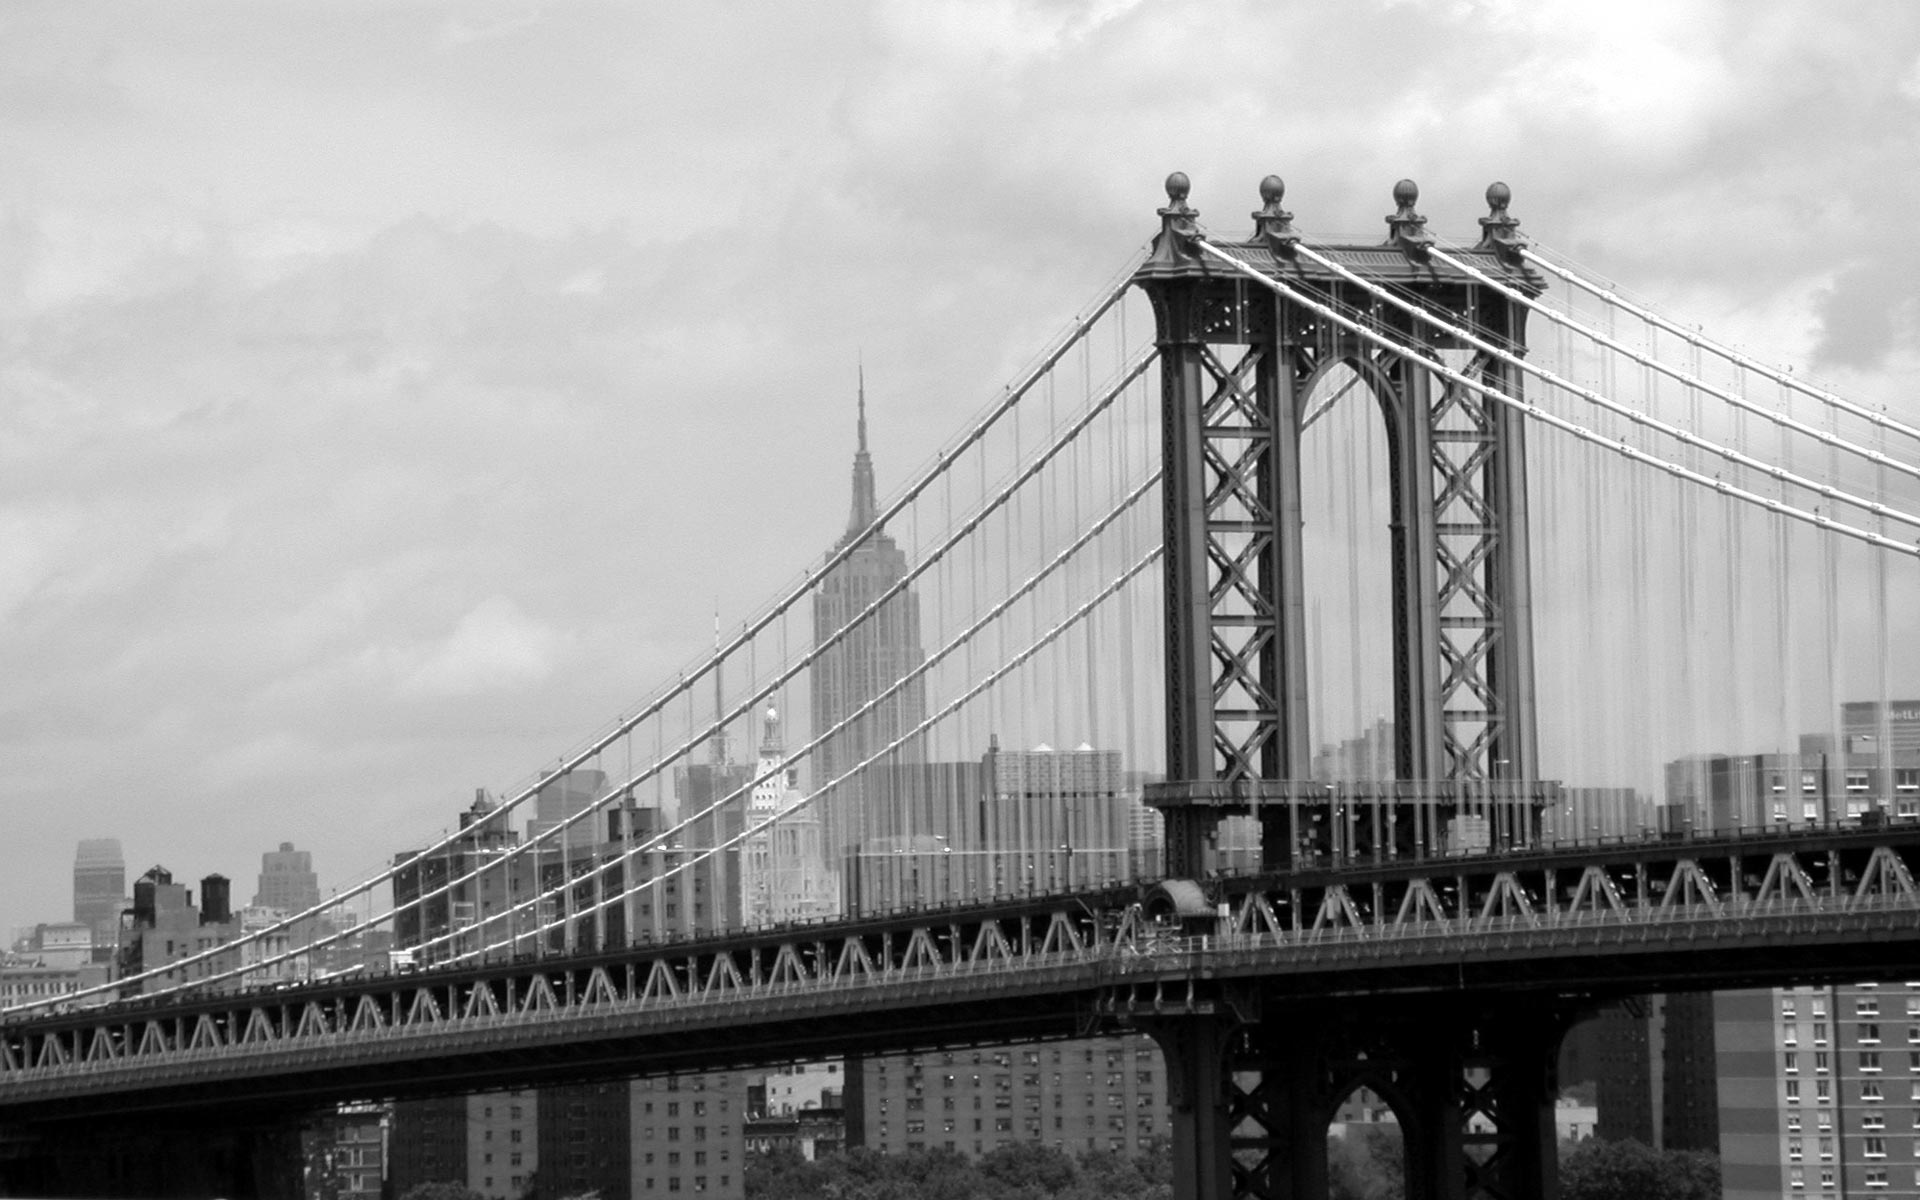 Manhattan Bridge, New York, USA 1920x1200 Wallpapers